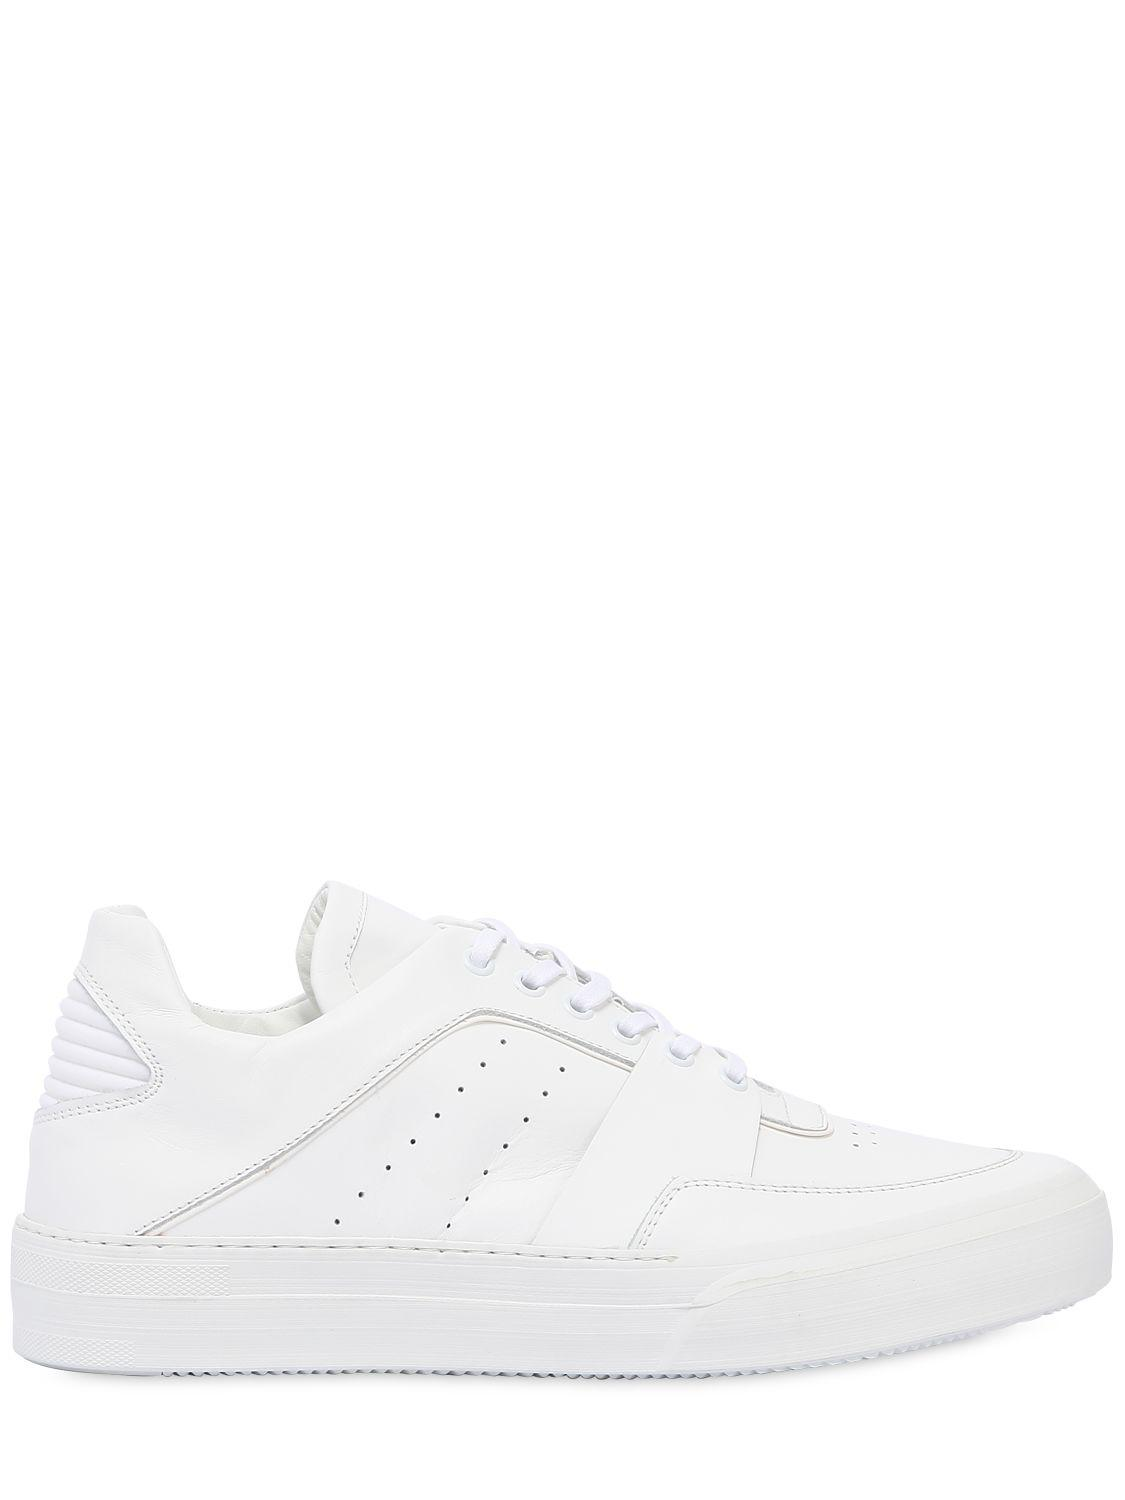 Bikkembergs ARENA PLATFORM LEATHER SNEAKERS